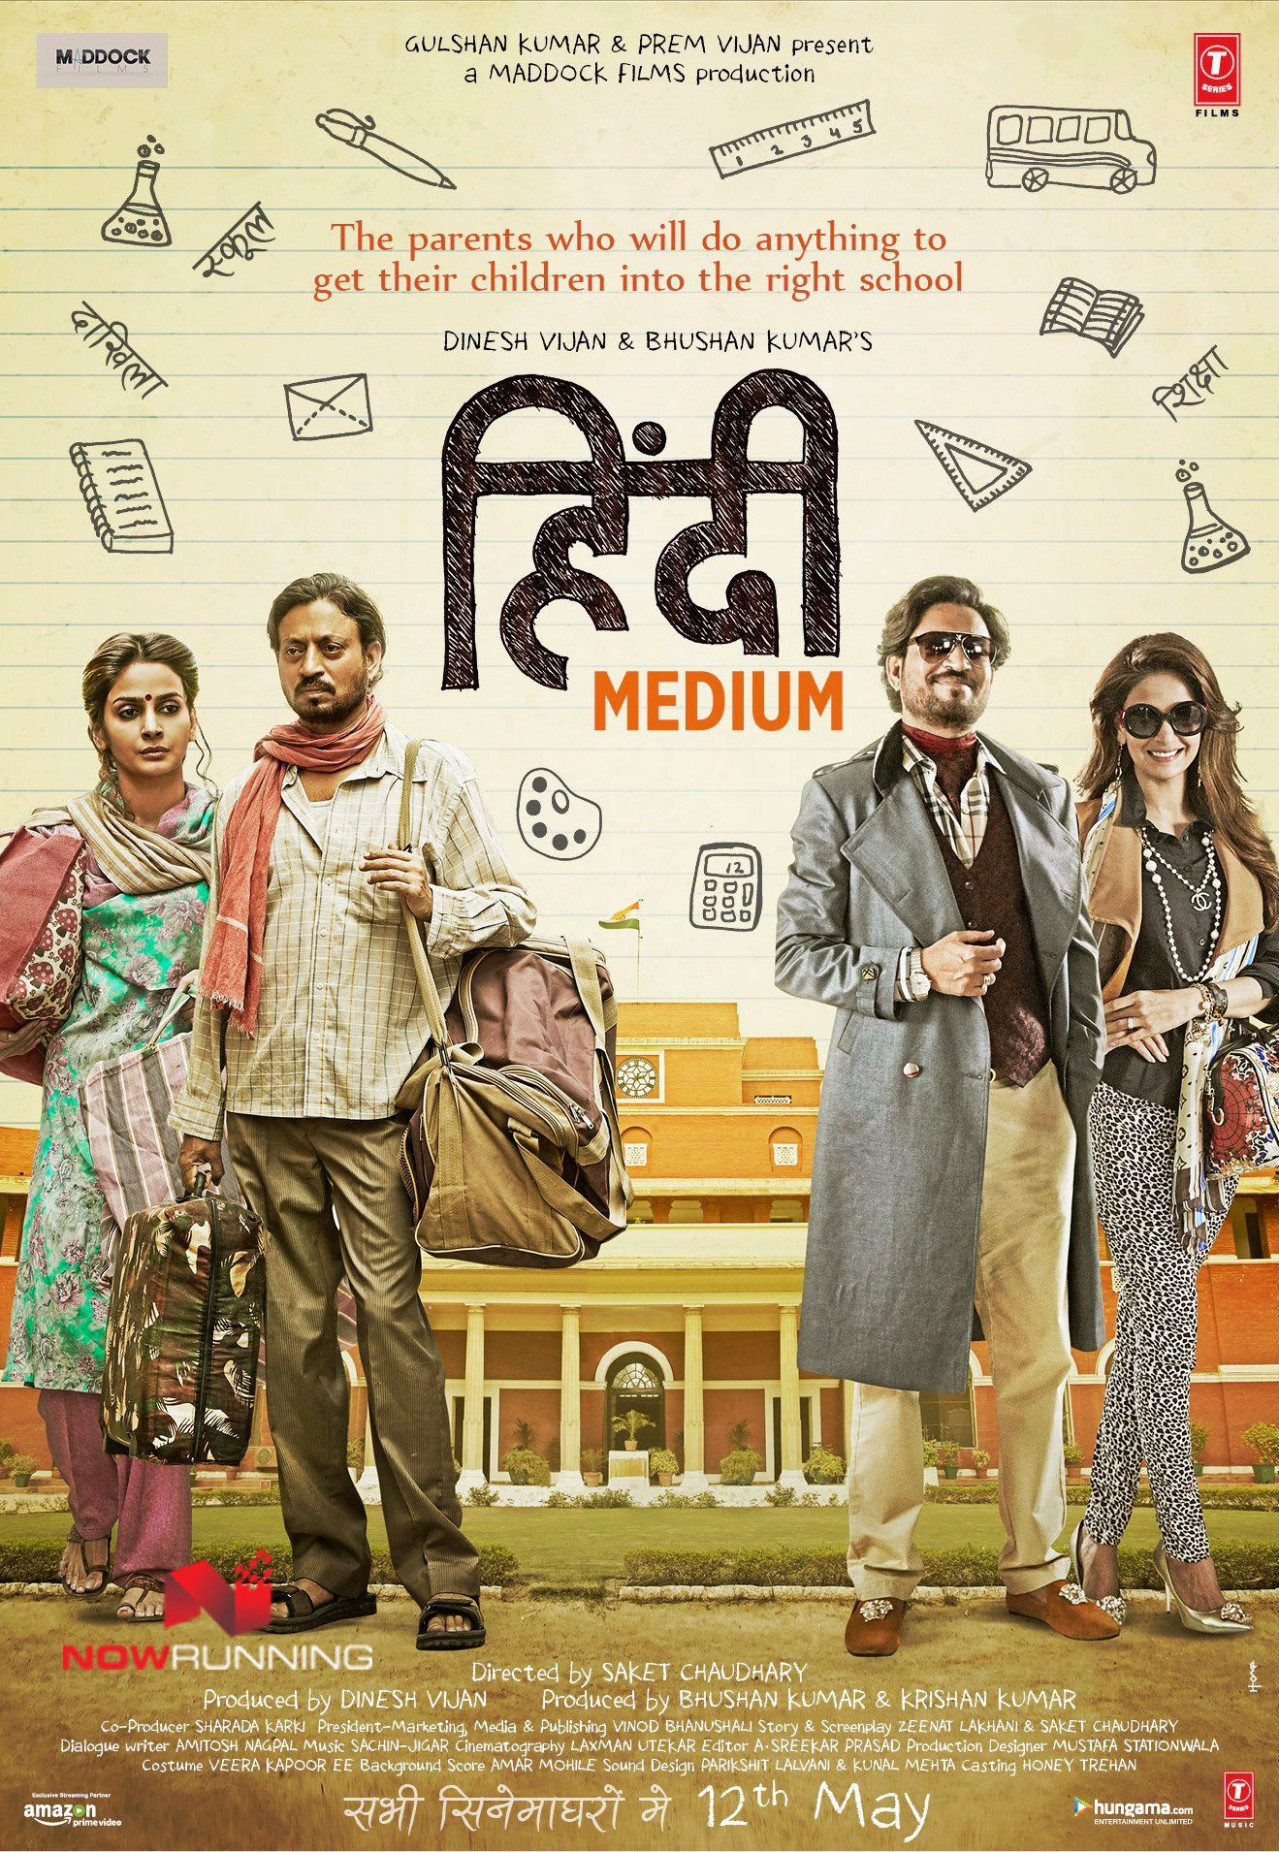 Hindi Medium New Poster | NOWRUNNING BOLLYWOOD in 2019 ...